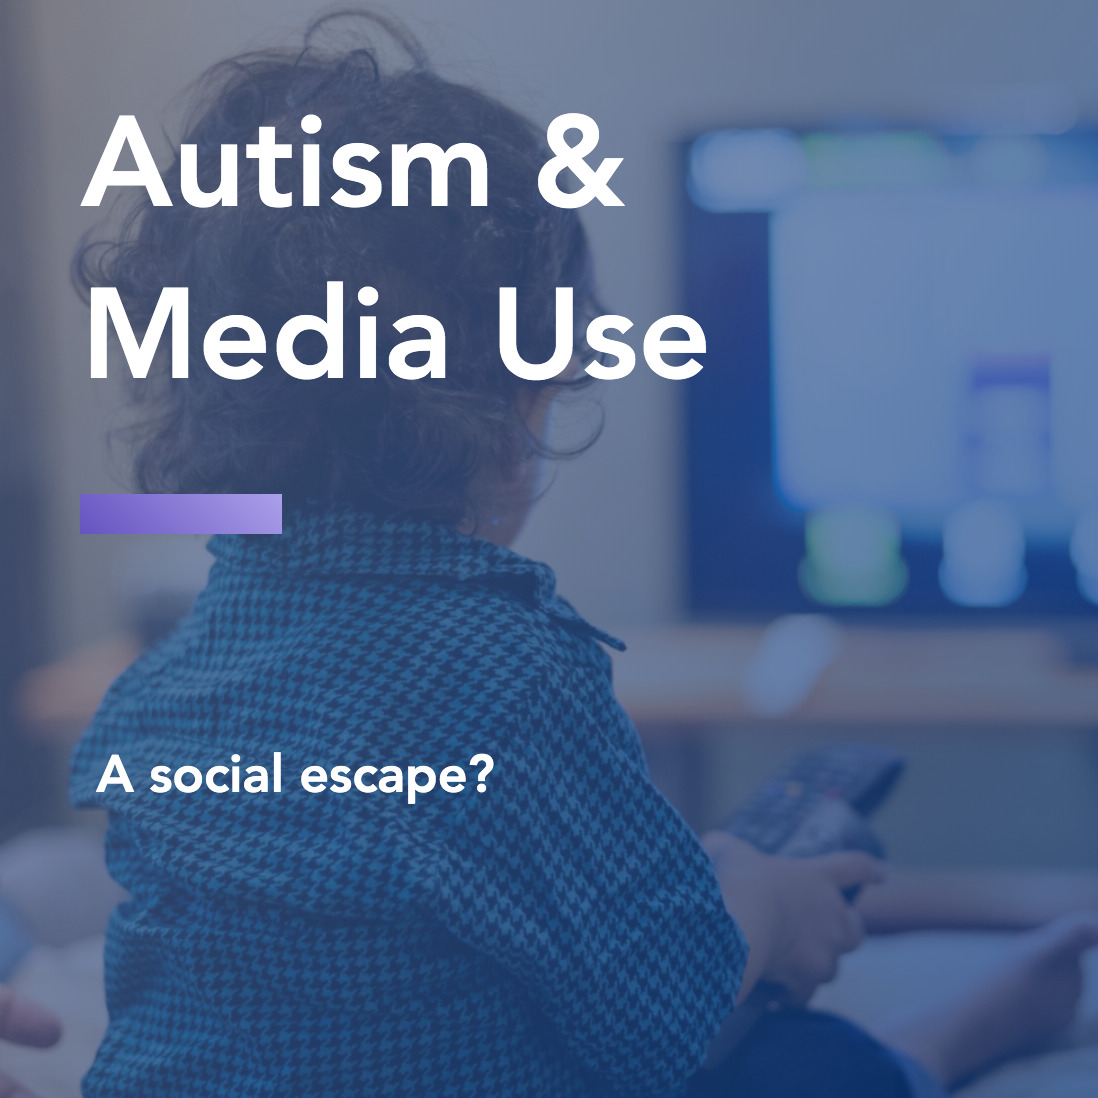 Autism & Media Use: A social escape?